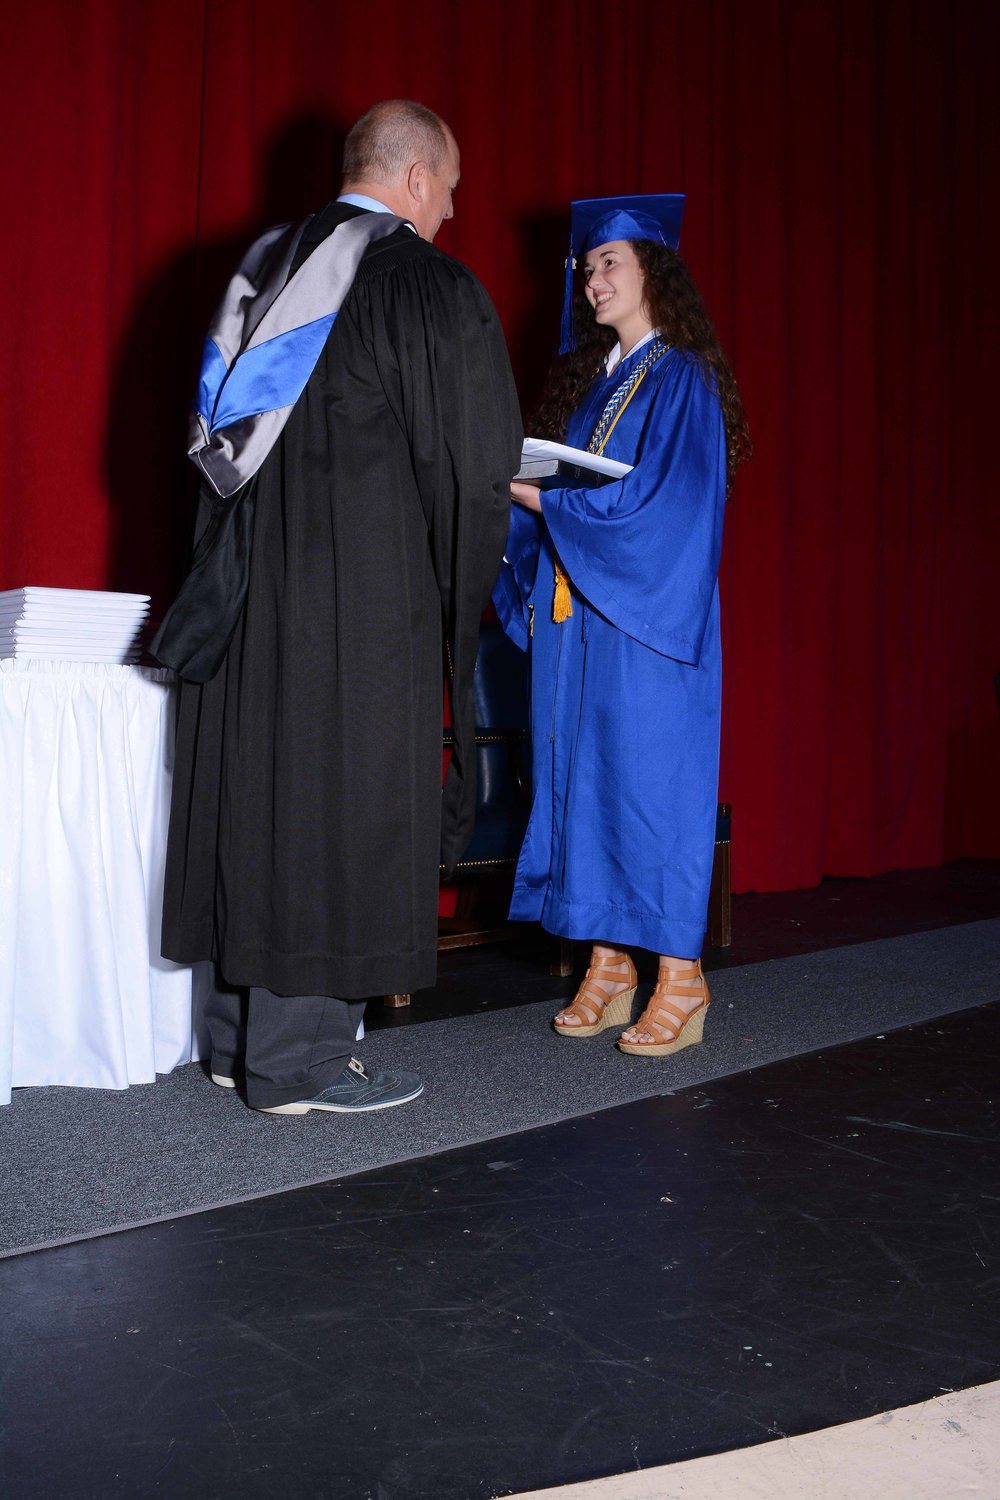 May14 Commencement97.jpg